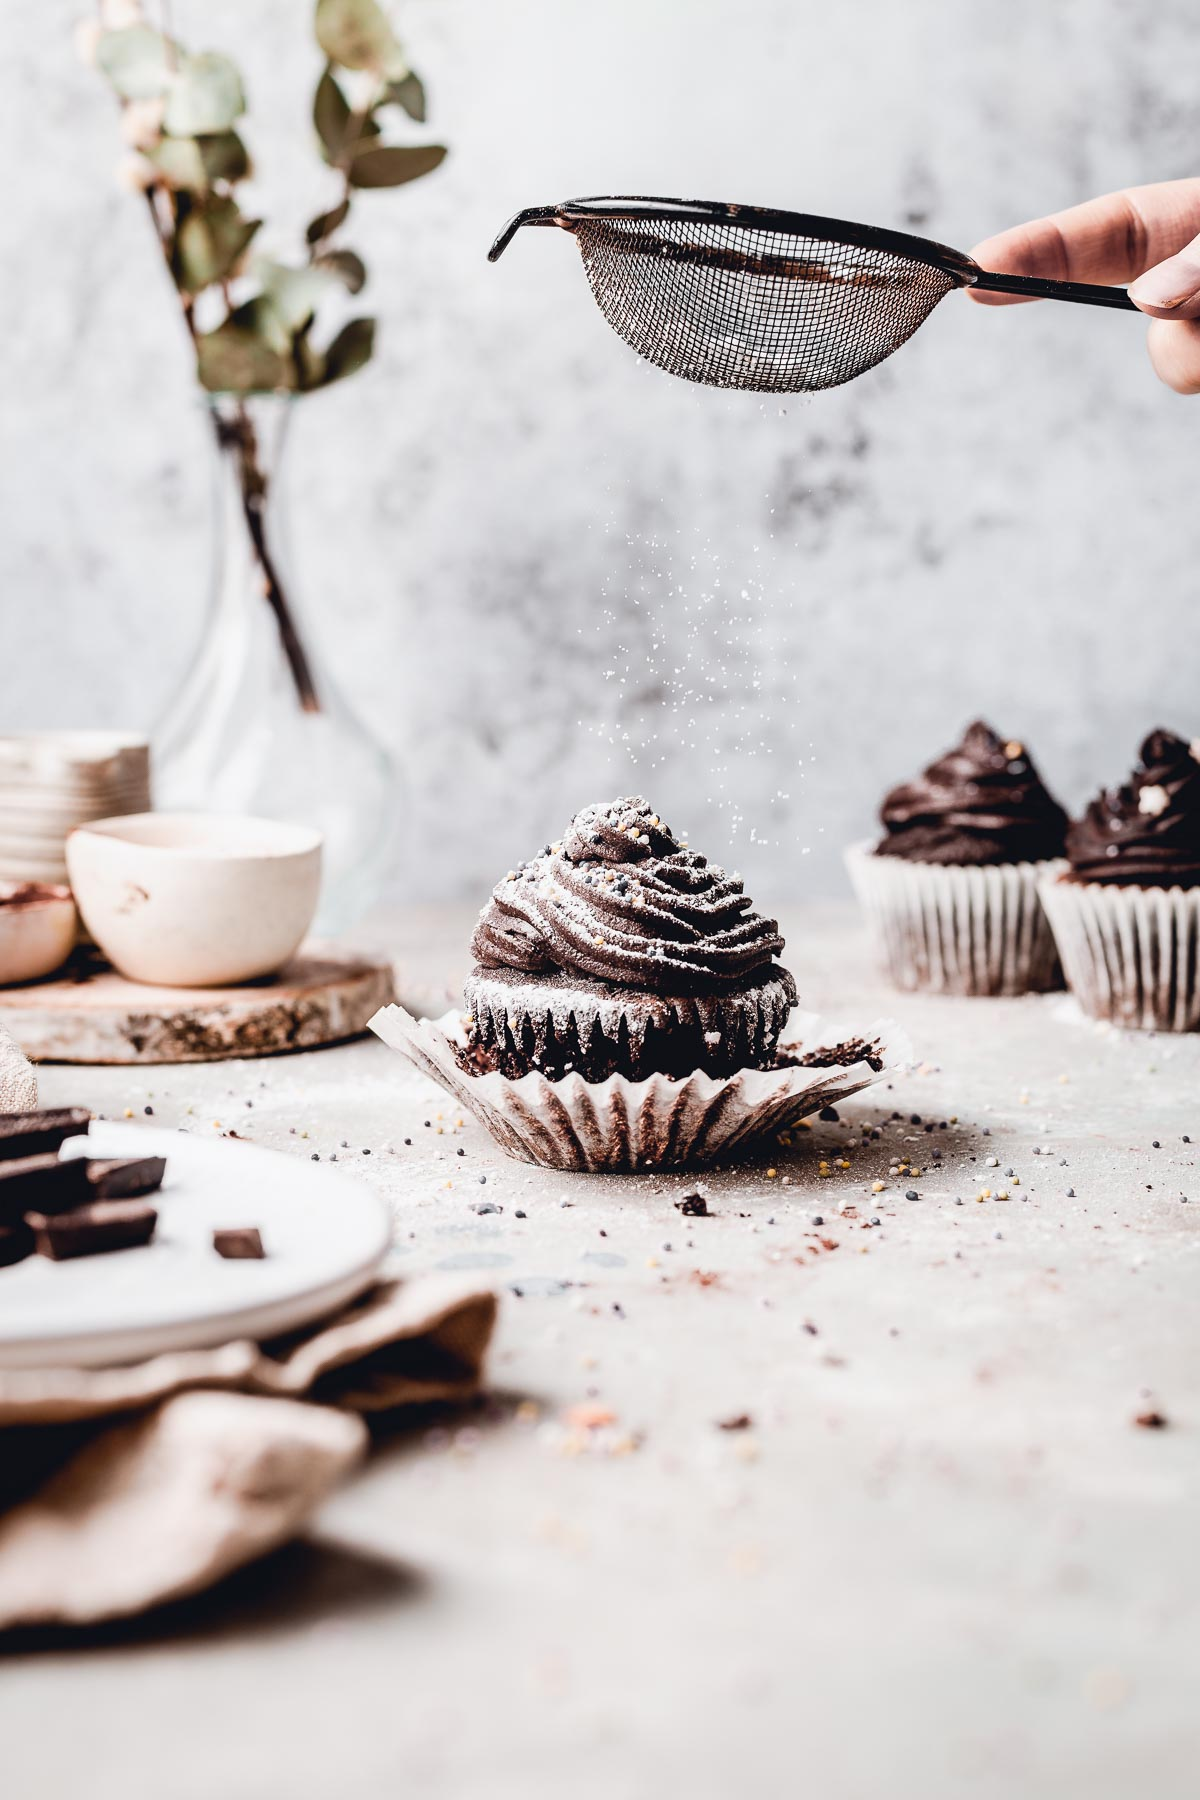 A hand dusting a single chocolate cupcake with powdered sugar.